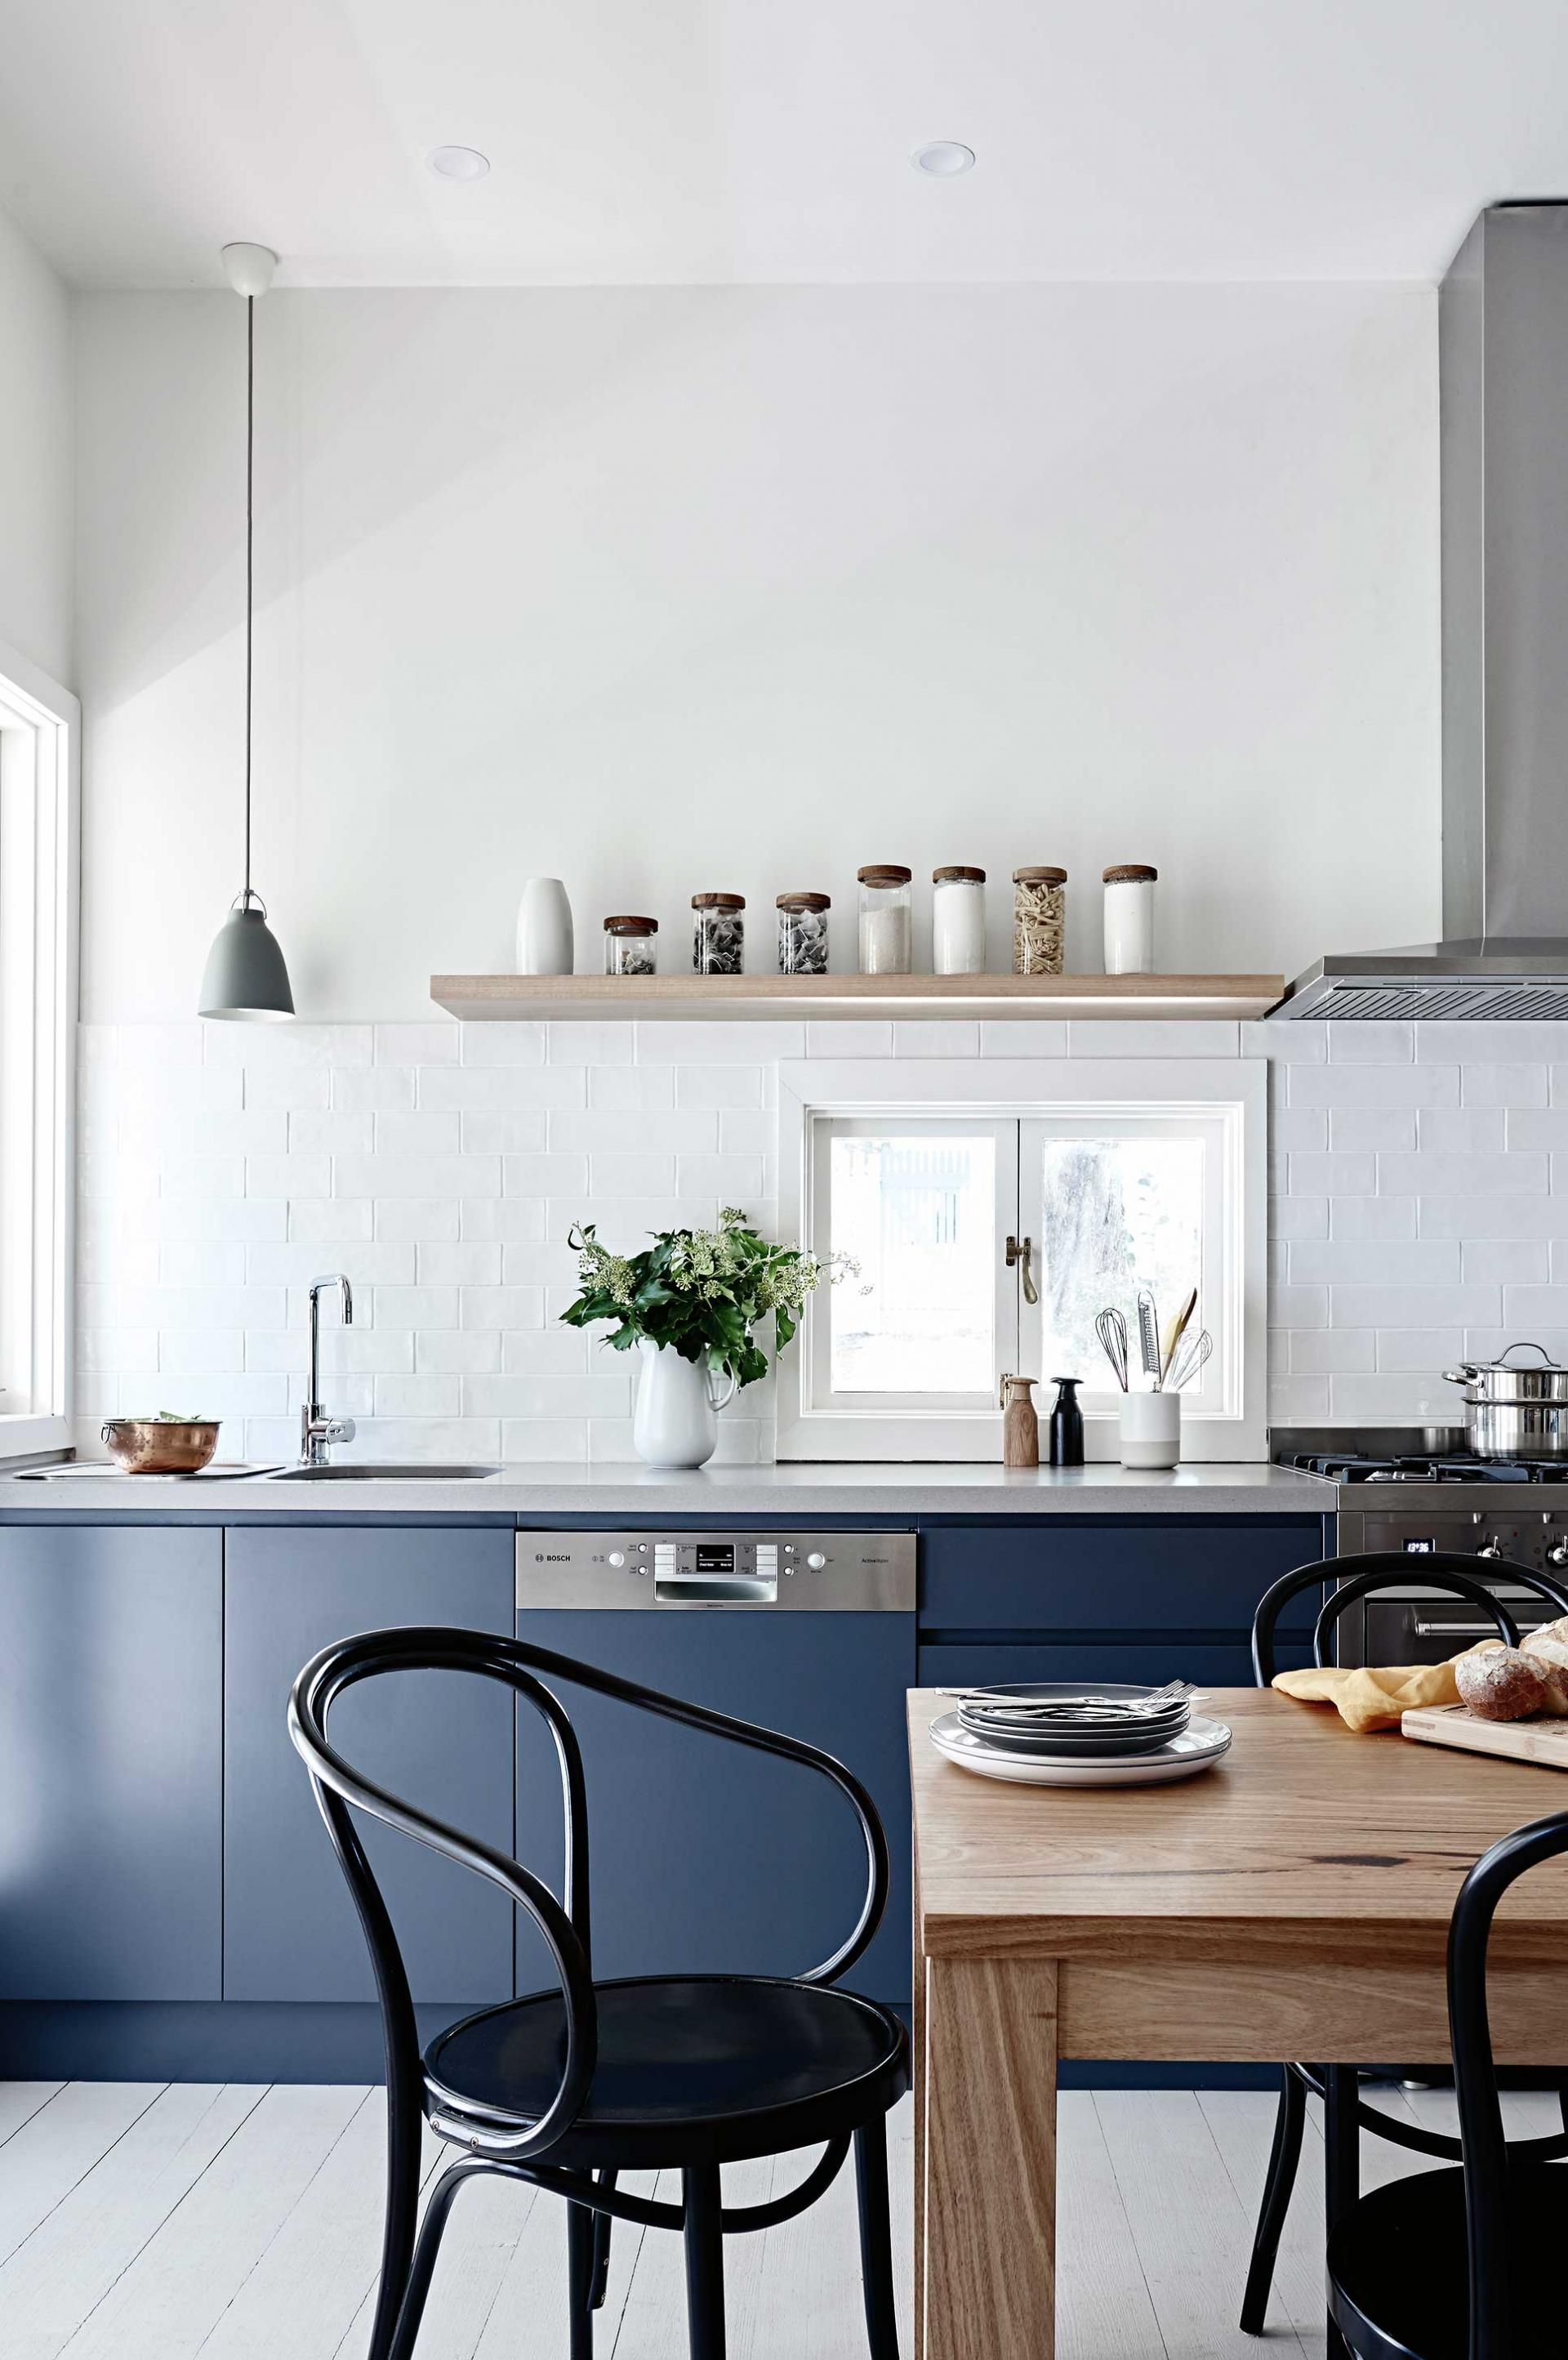 Amazing Black Kitchen Cabinets That Are Right on Trend for 2018 ...